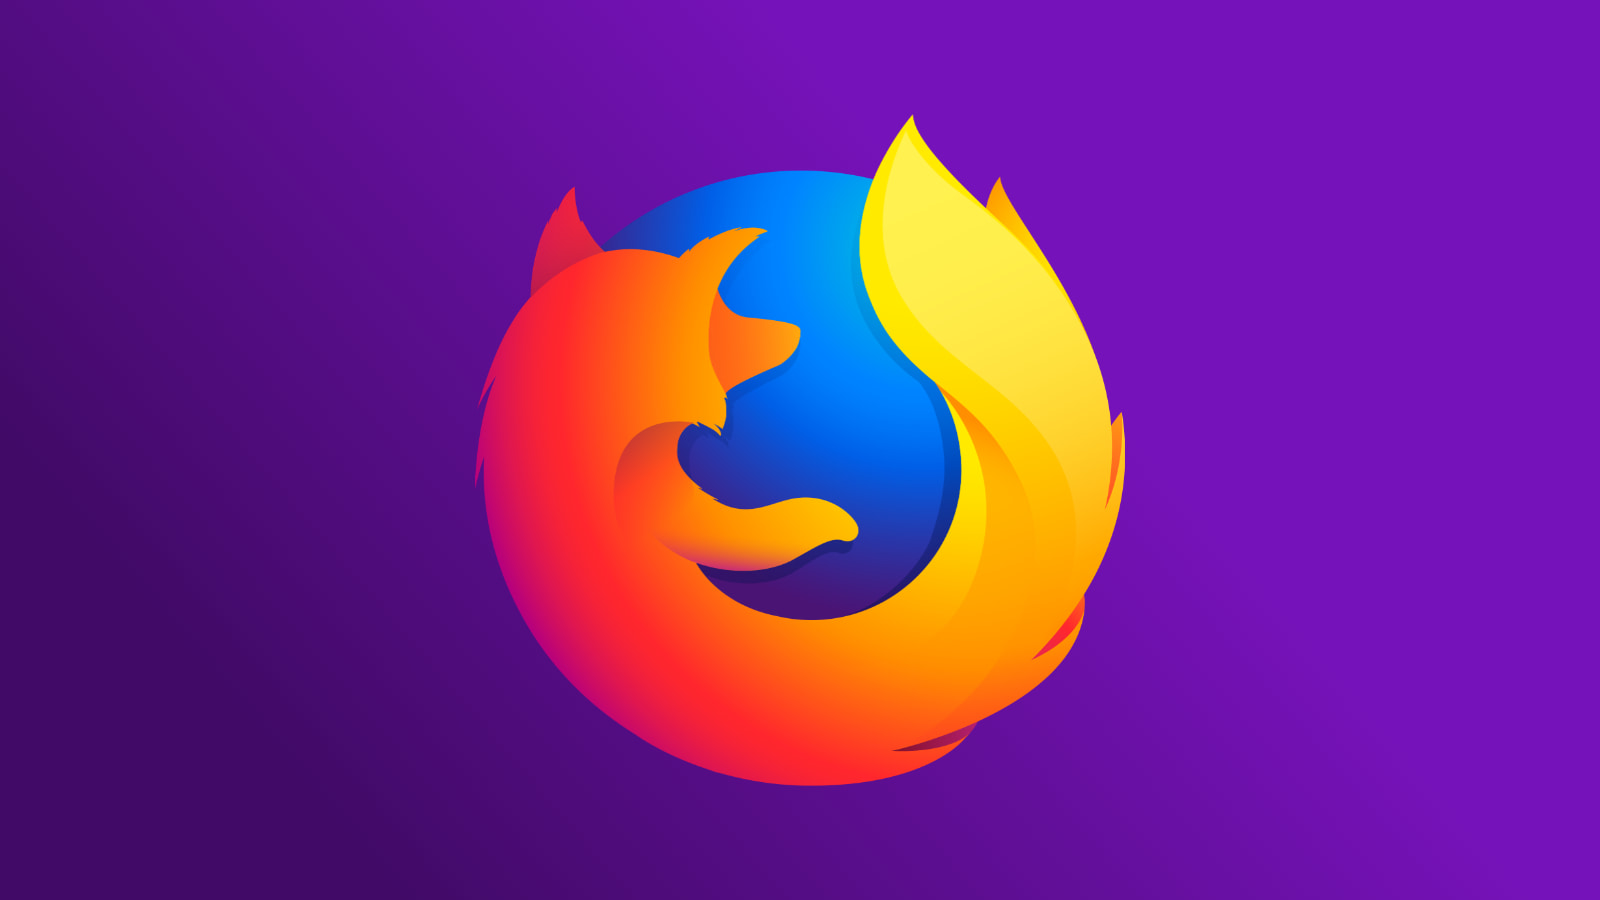 Install the latest version of Firefox on your Chromebook with Nano